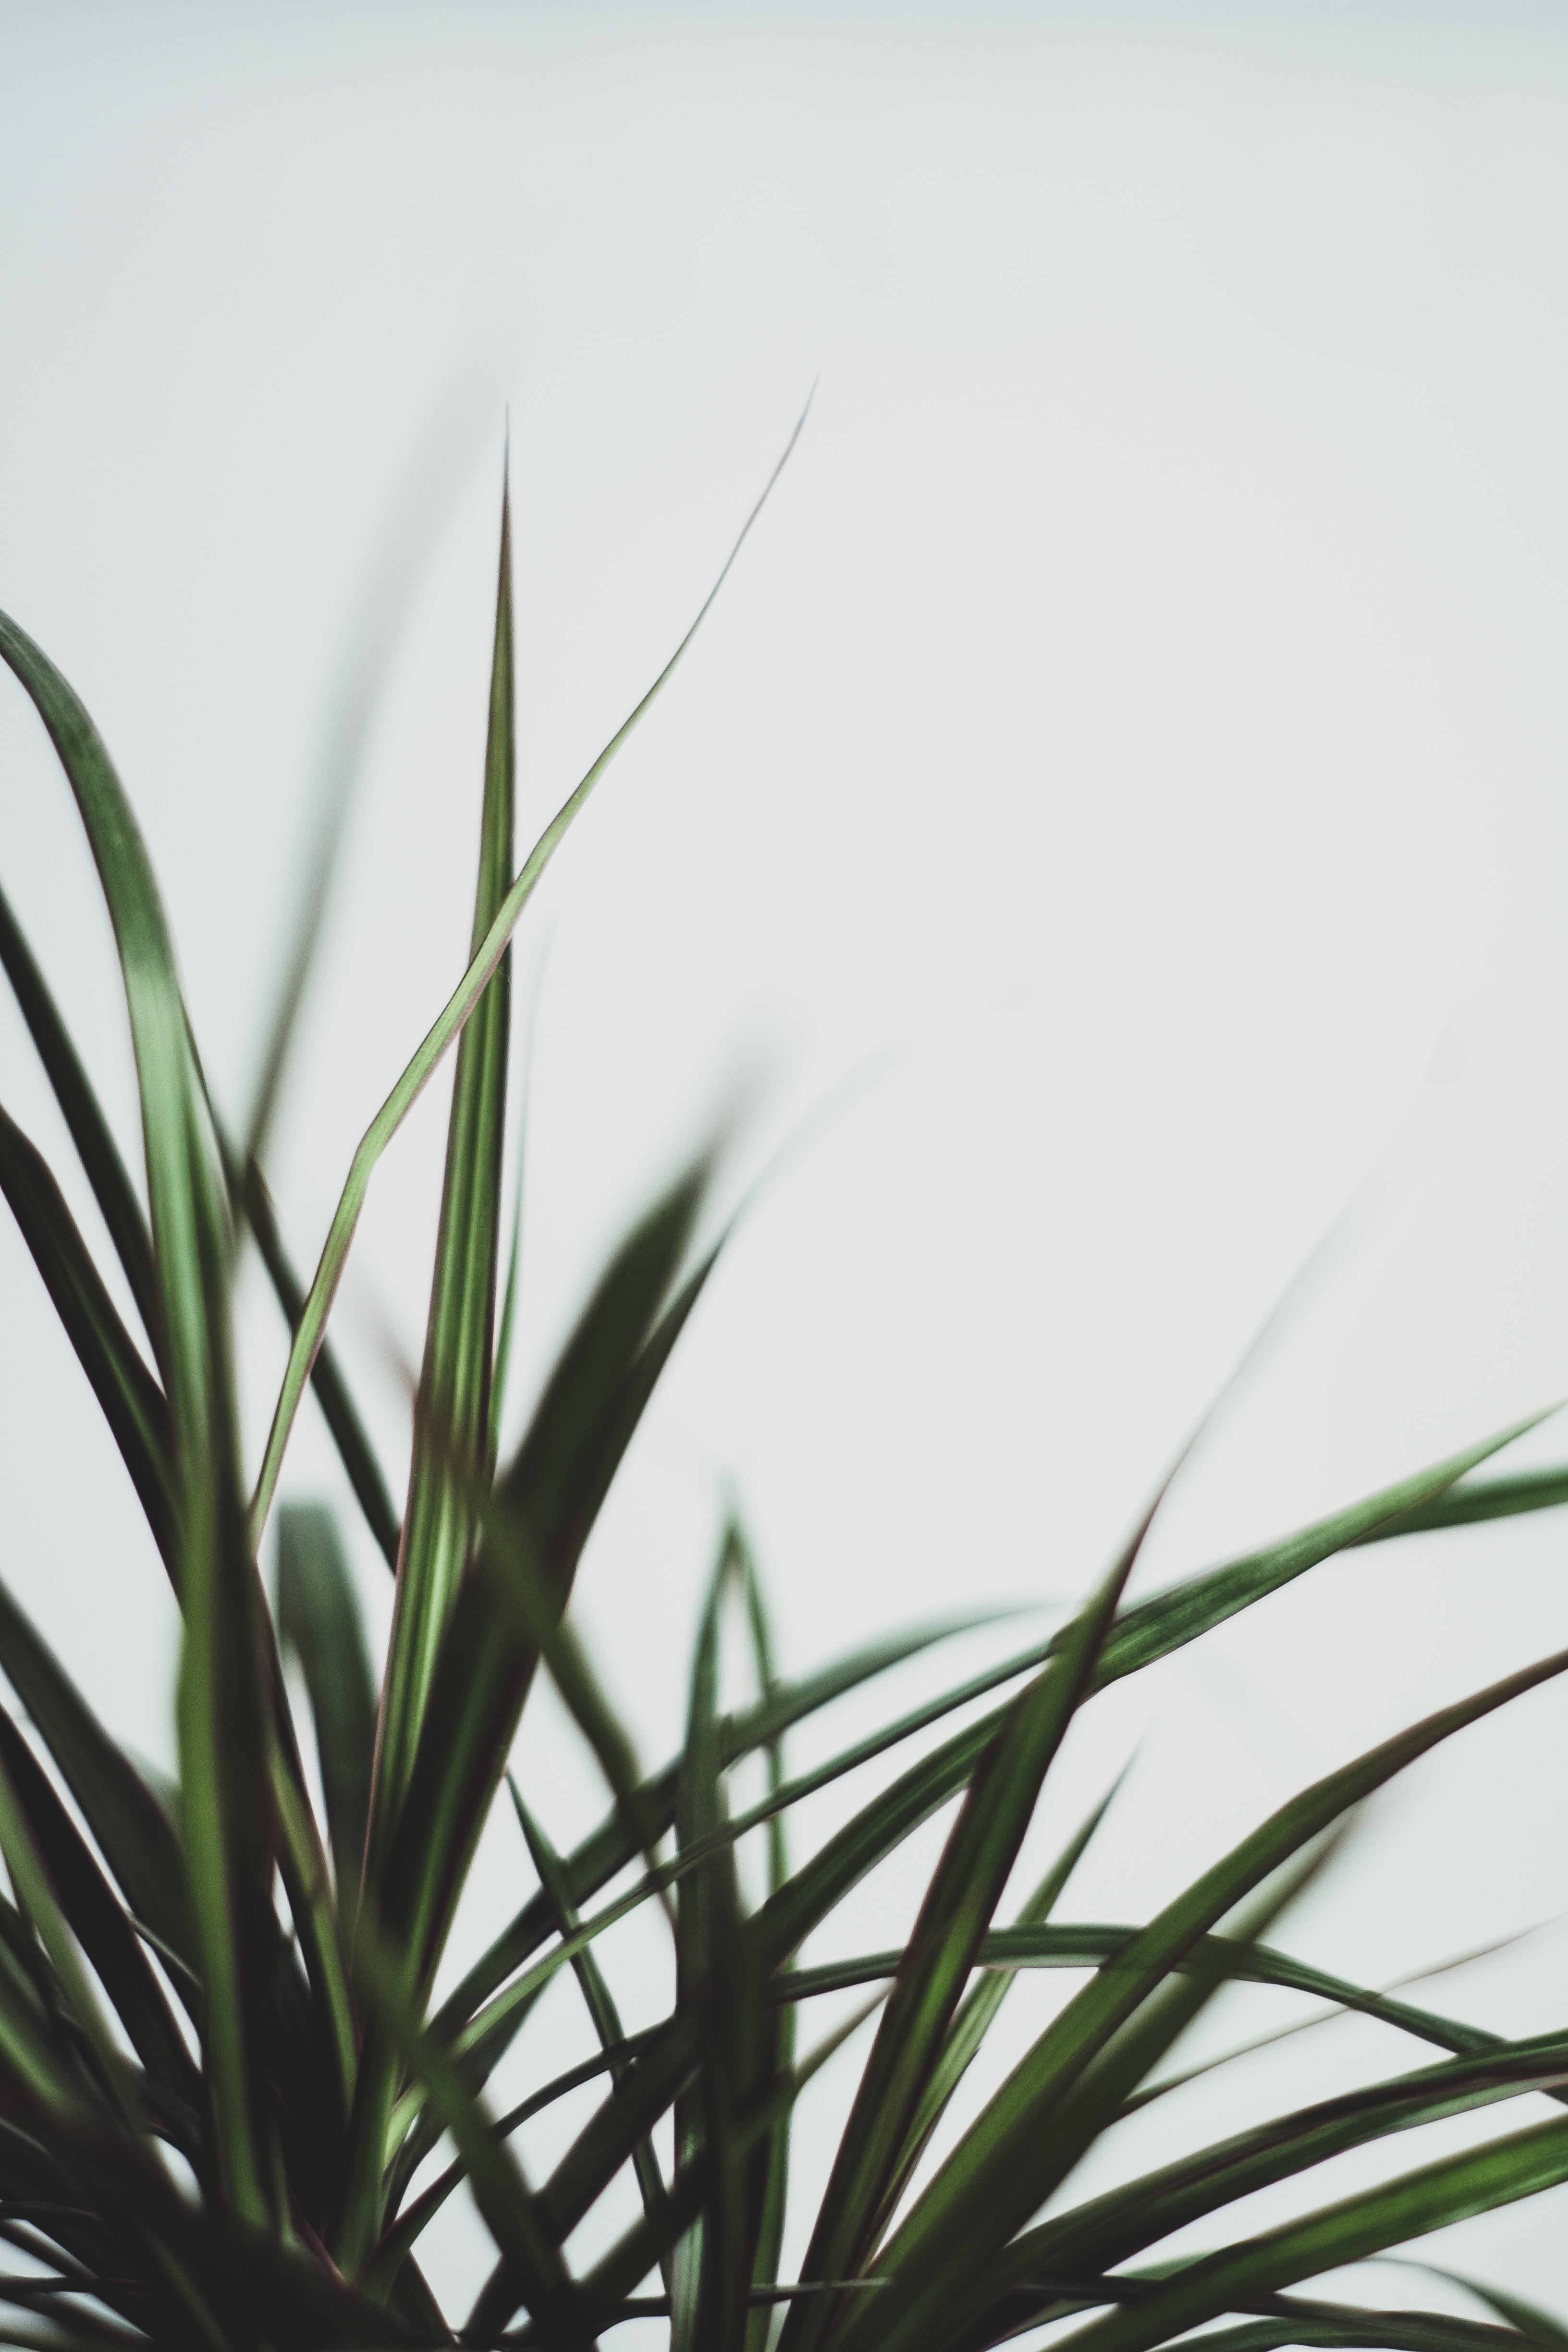 selective focus photography of sword green plant